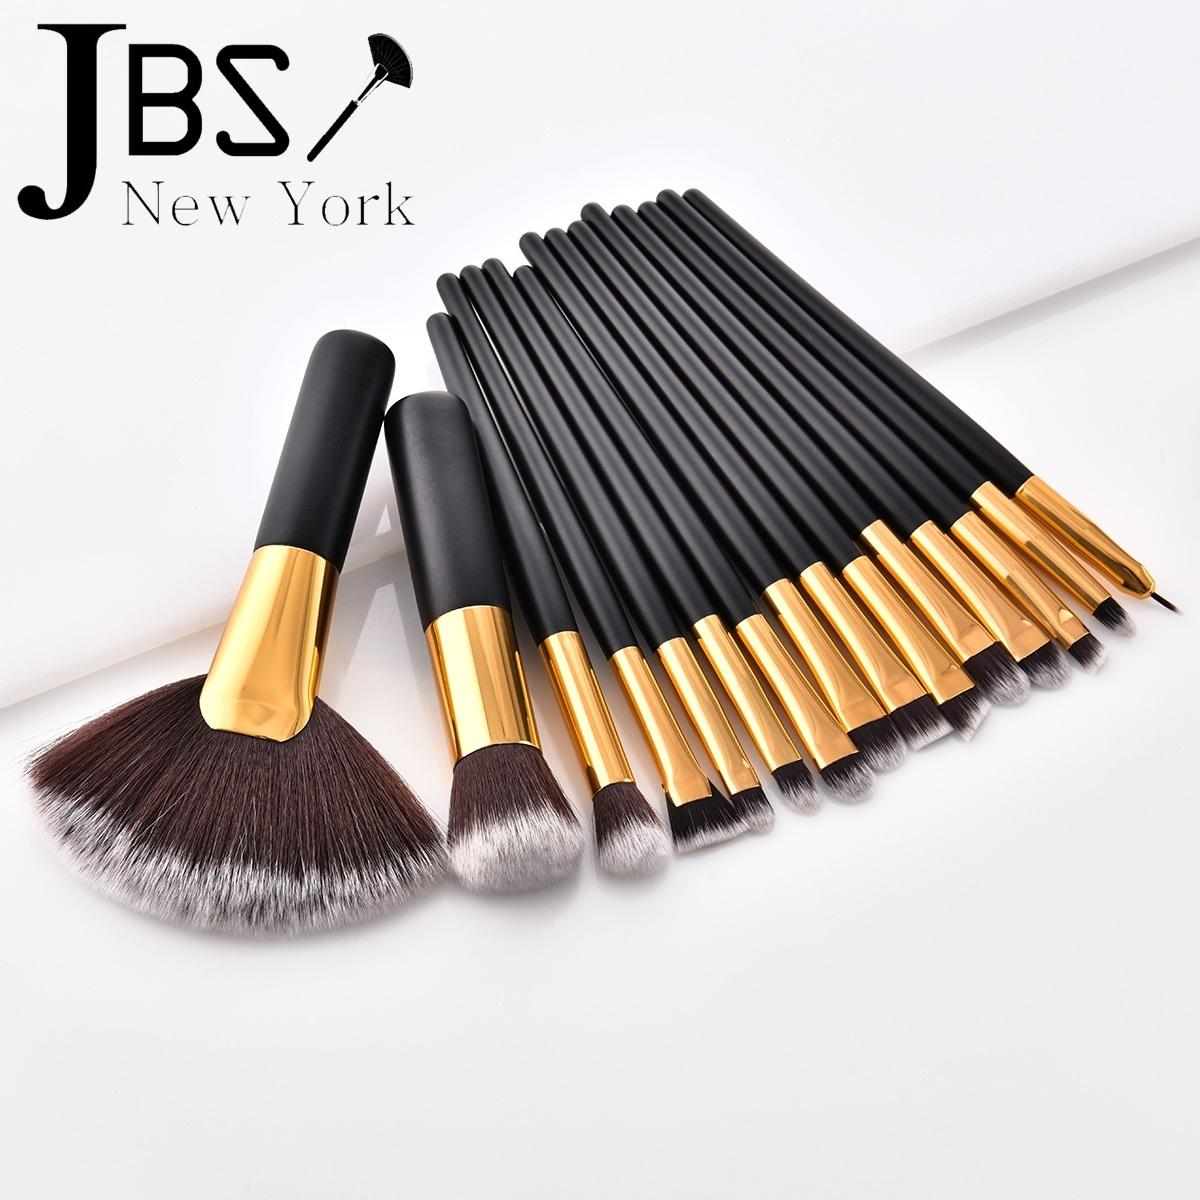 Fitur Jbs New York Kuas Makeup Brush 15 Set Make Up K021 12 Eyerush Gold K 046